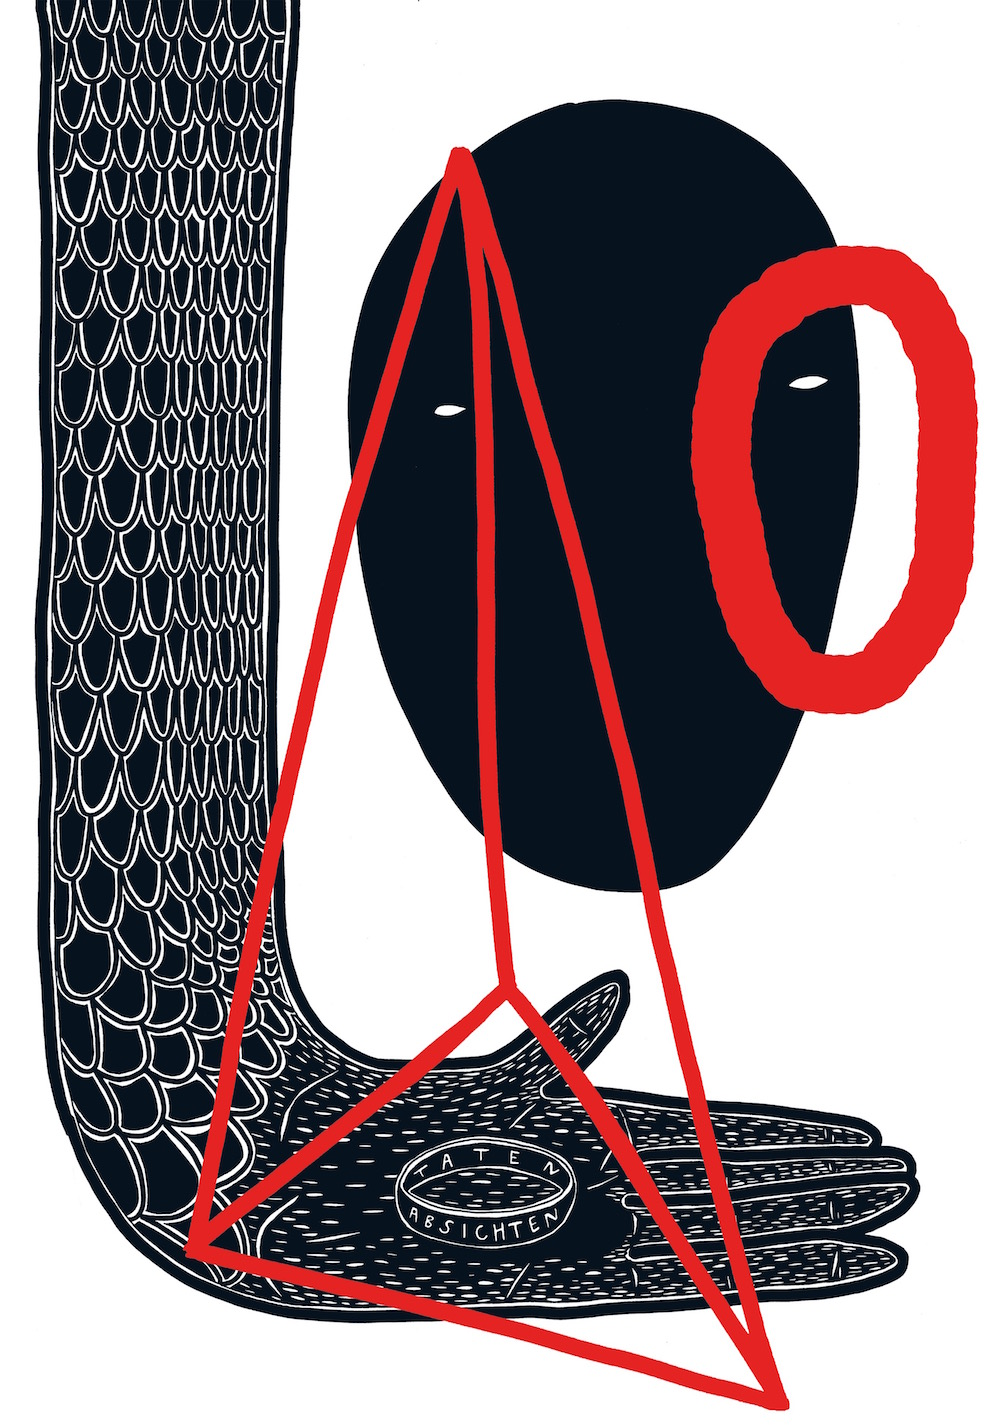 illustration, illustrations, illustrator, illustrators, hand, ring, rings, hands, triangle, scales, pattern, lines, strokes, zero, o, face, faces